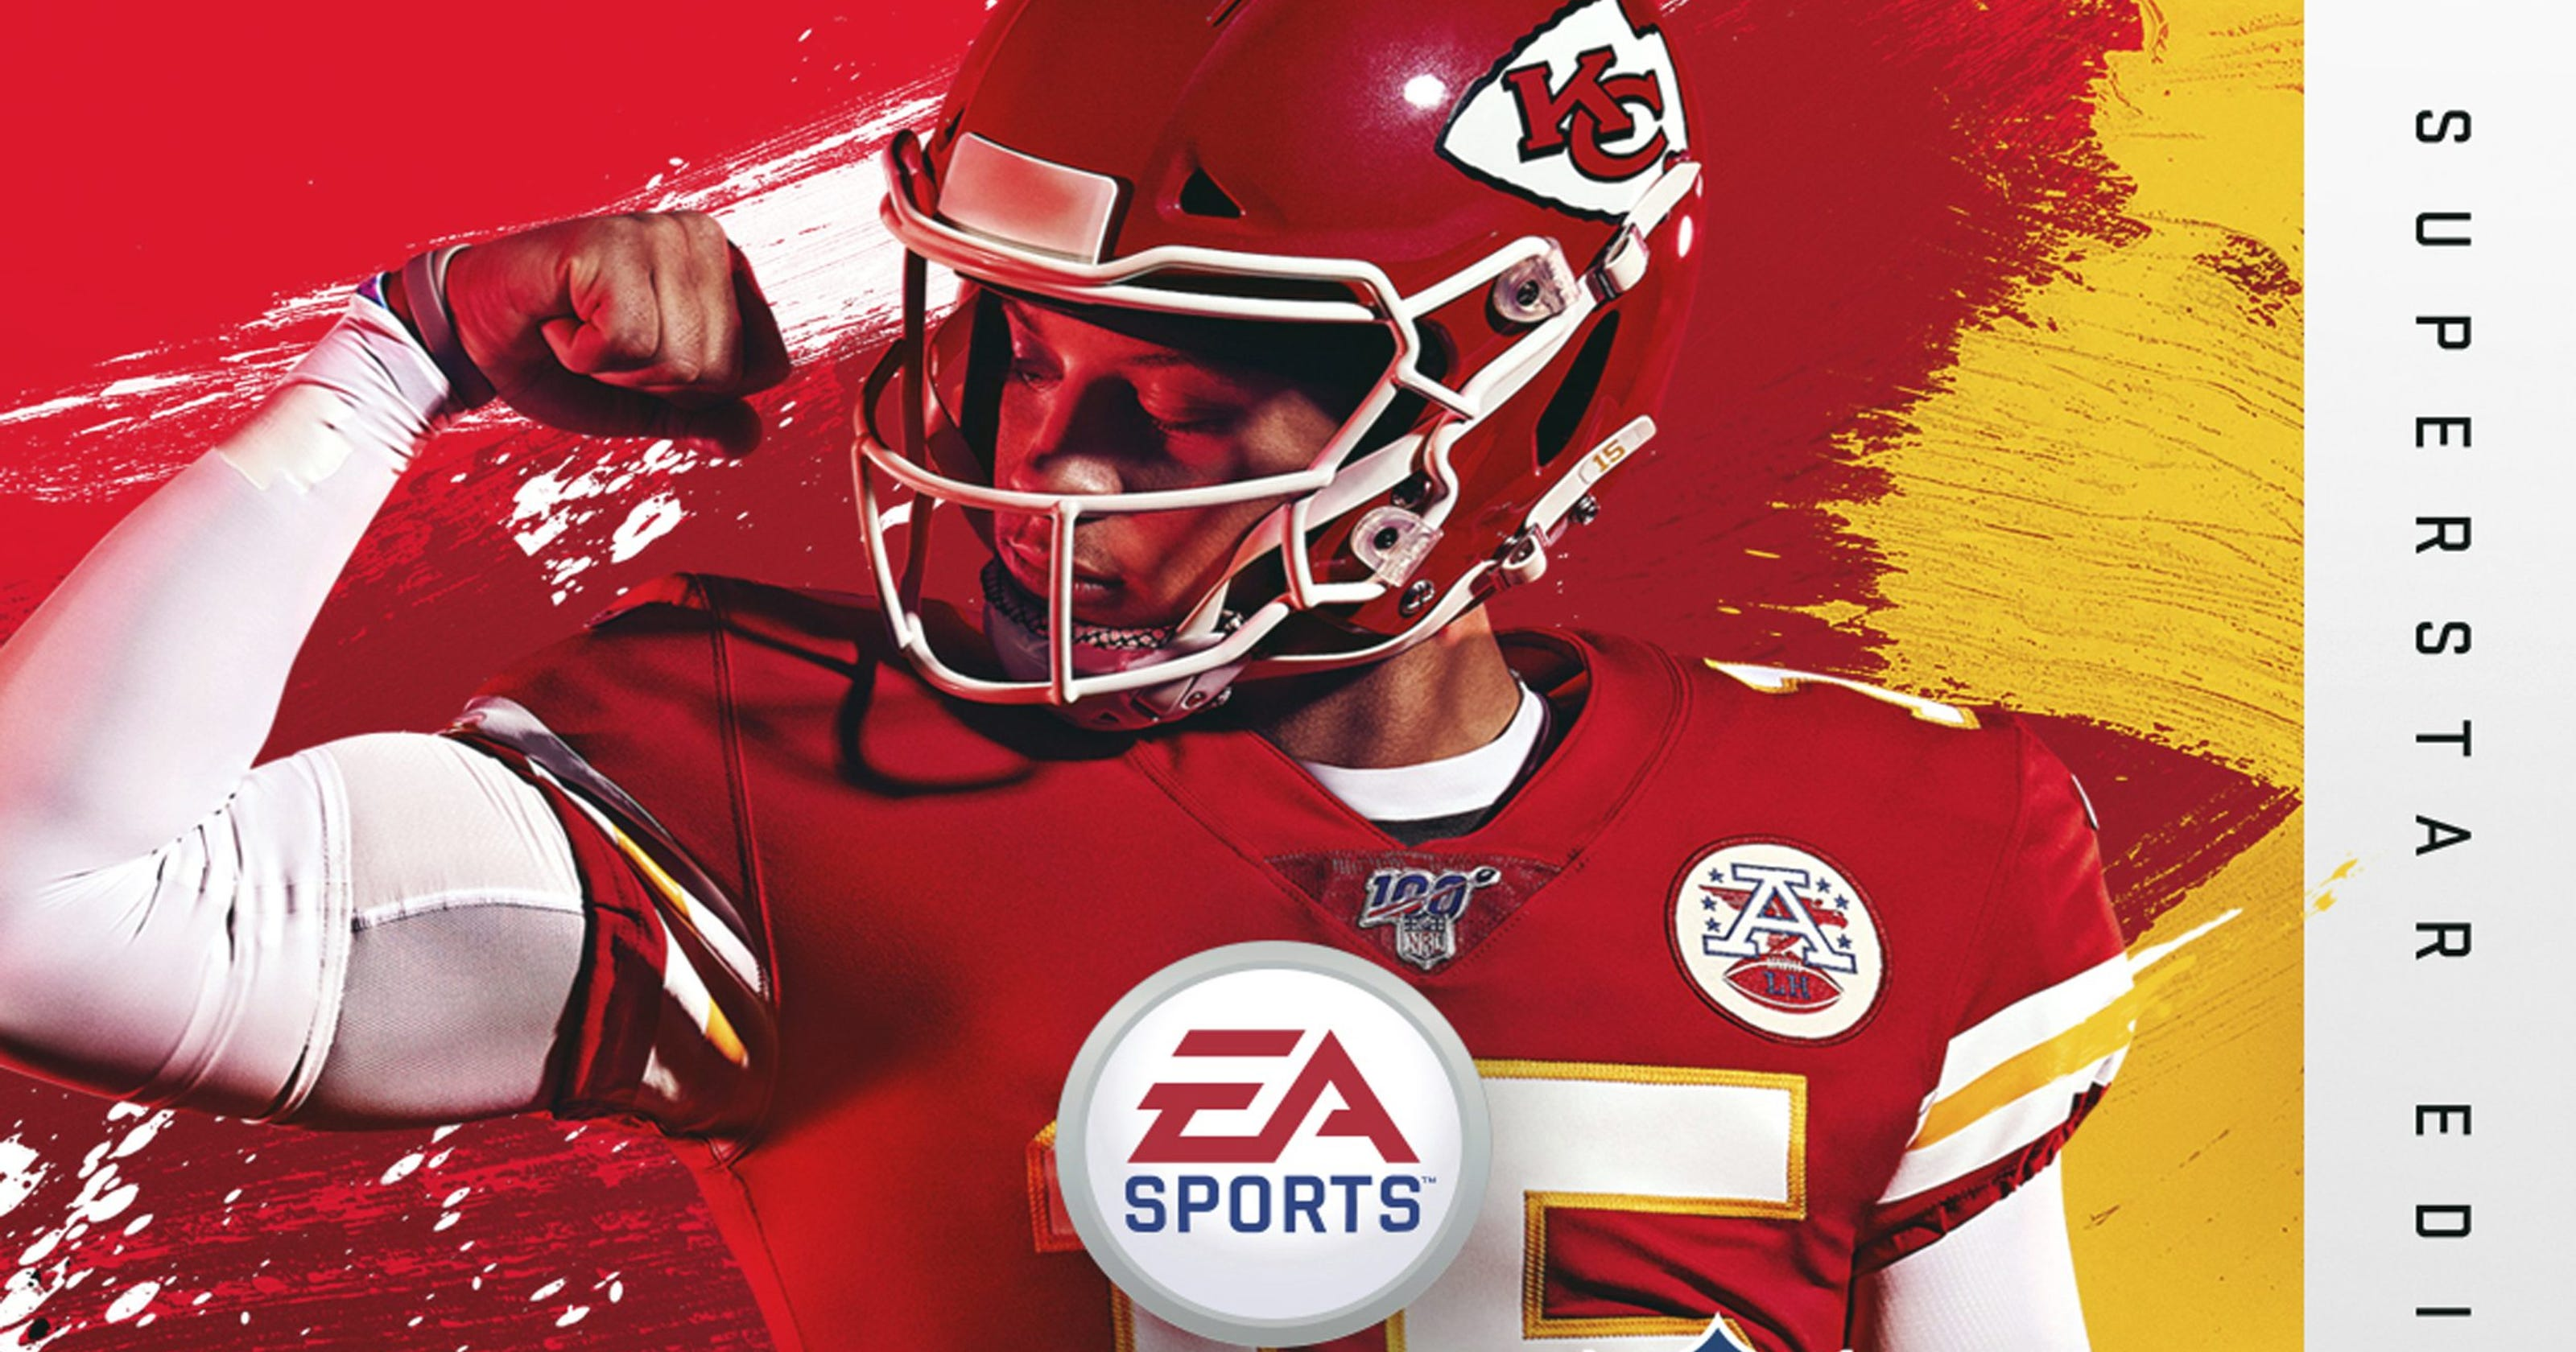 Best Qb Rating 2020 Madden 20: 11 ratings that have fans, players complaining